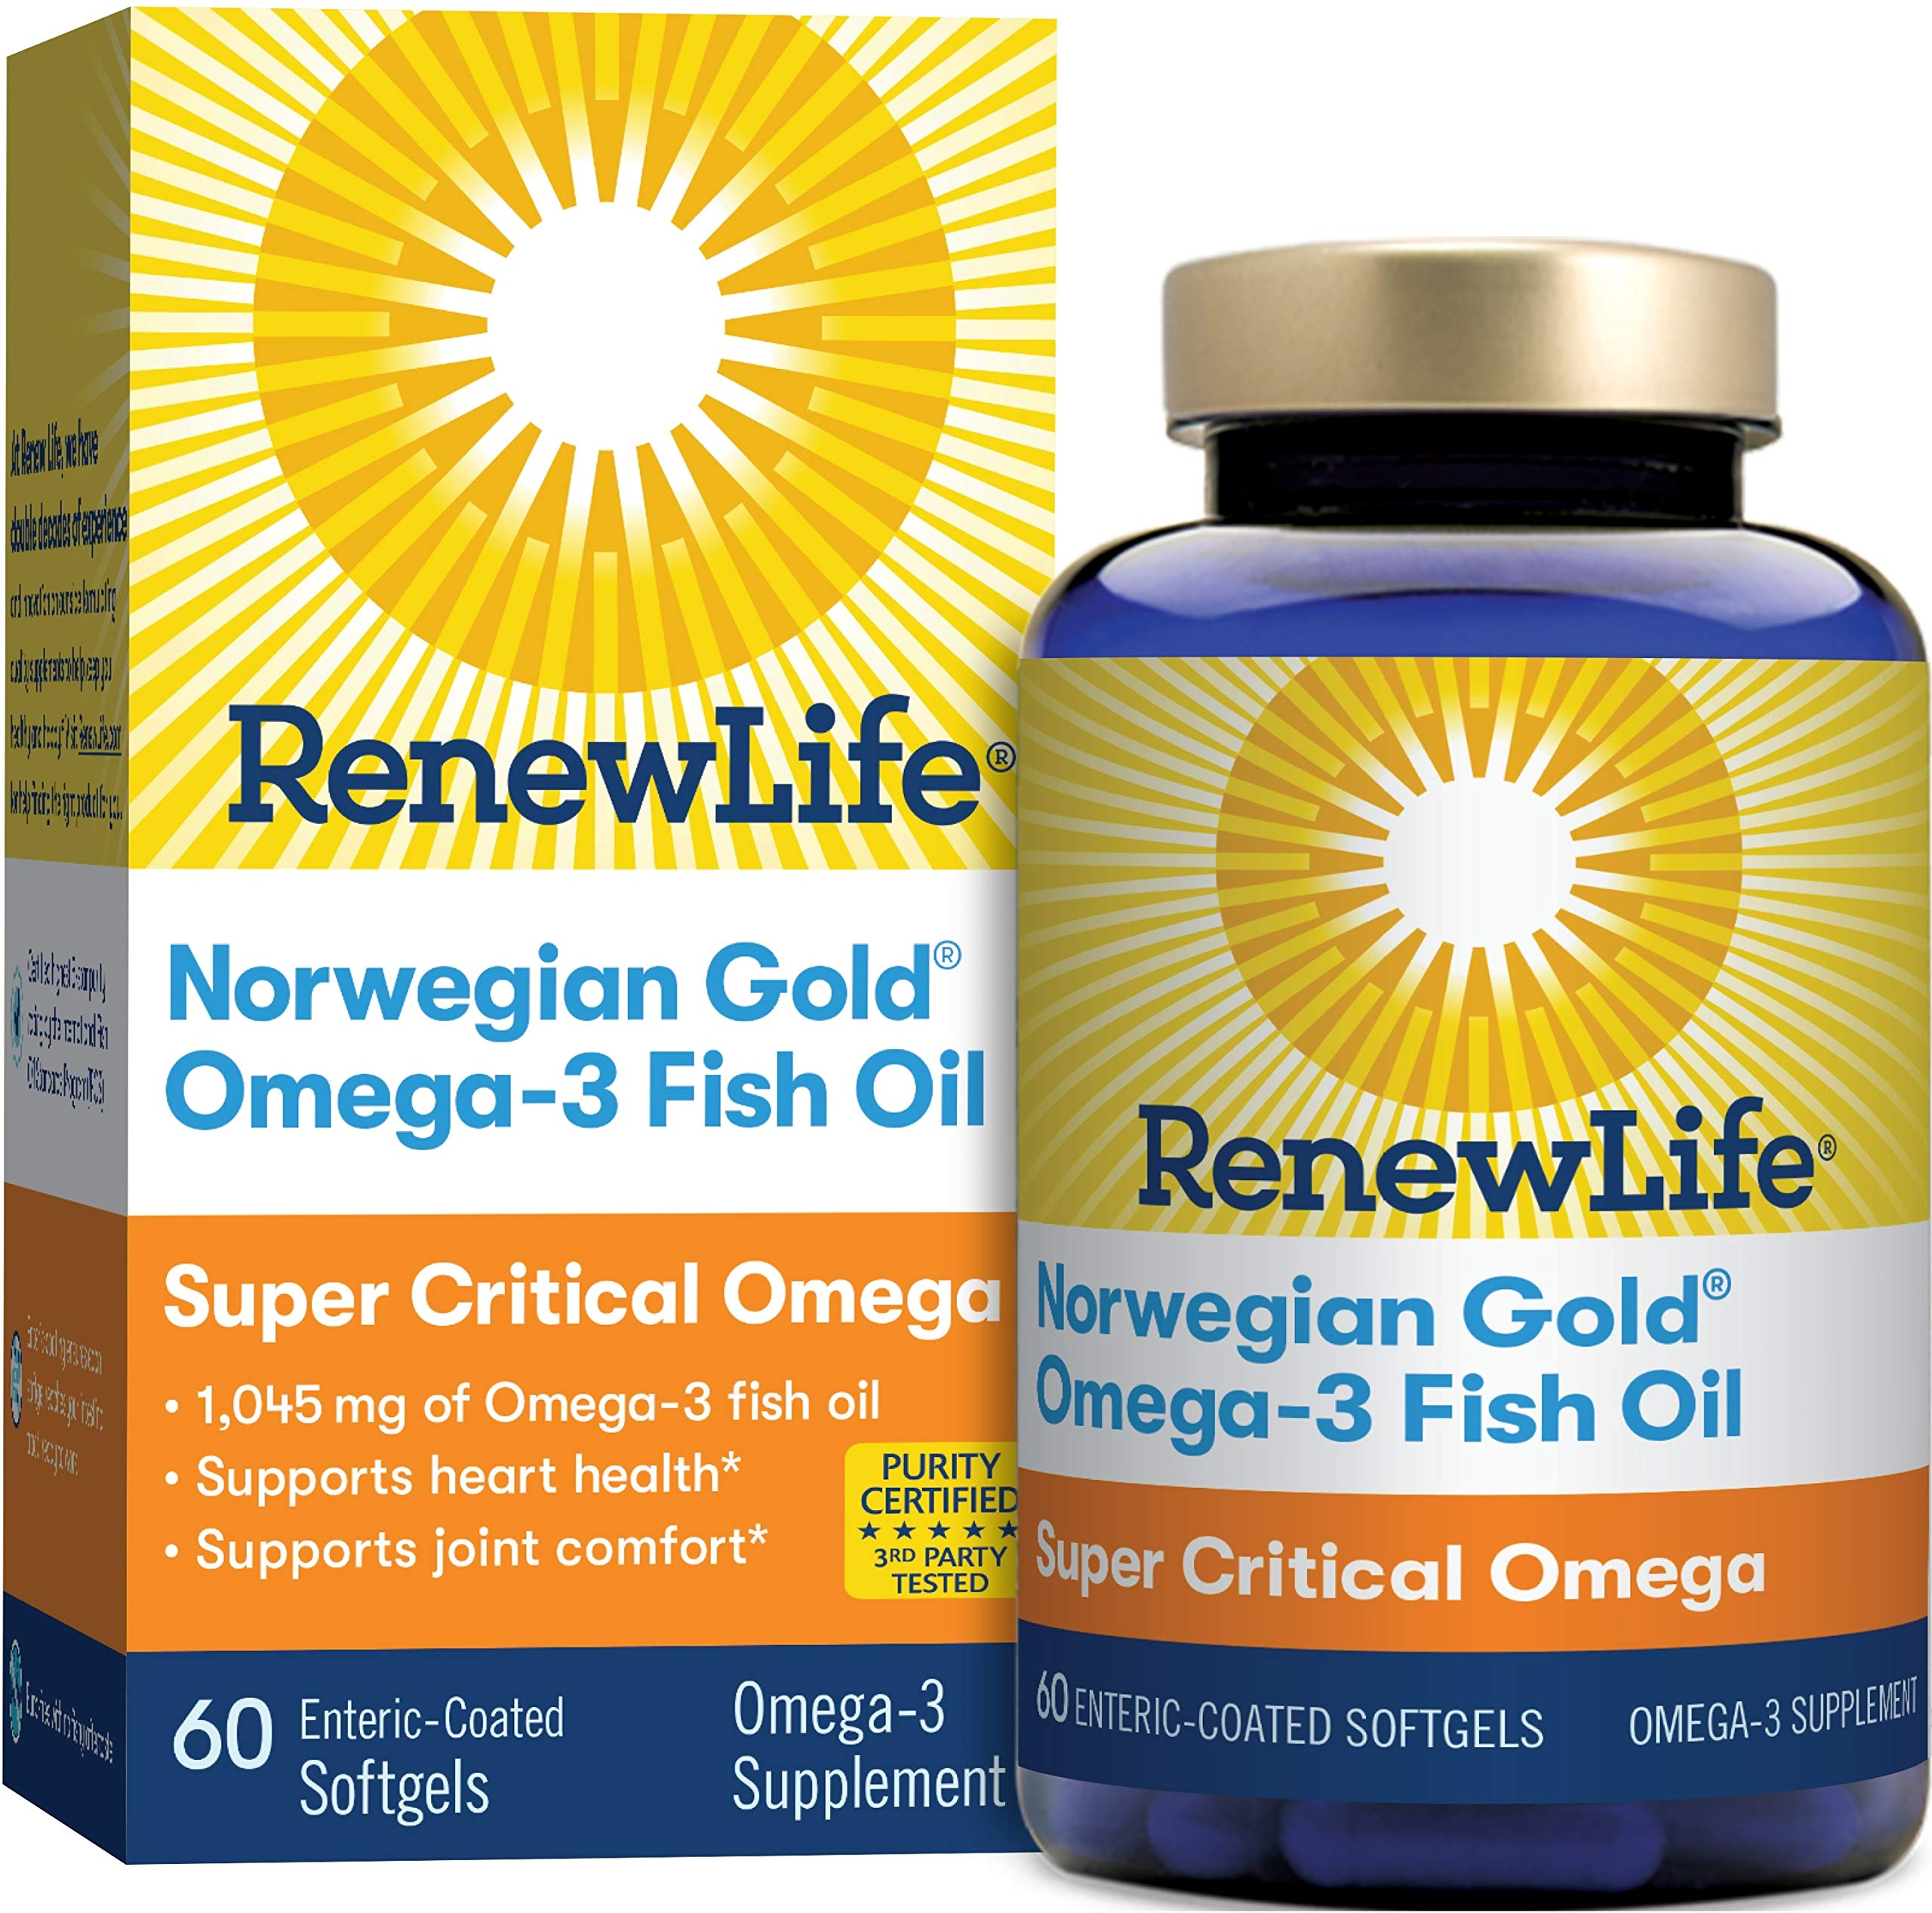 Renew Life Norwegian Gold Adult Fish Oil - Super Critical Omega, Fish Oil Omega-3 Supplement - Gluten & Dairy Free - 60 Burp-Free Softgel Capsules (Packaging May Vary) by Renew Life